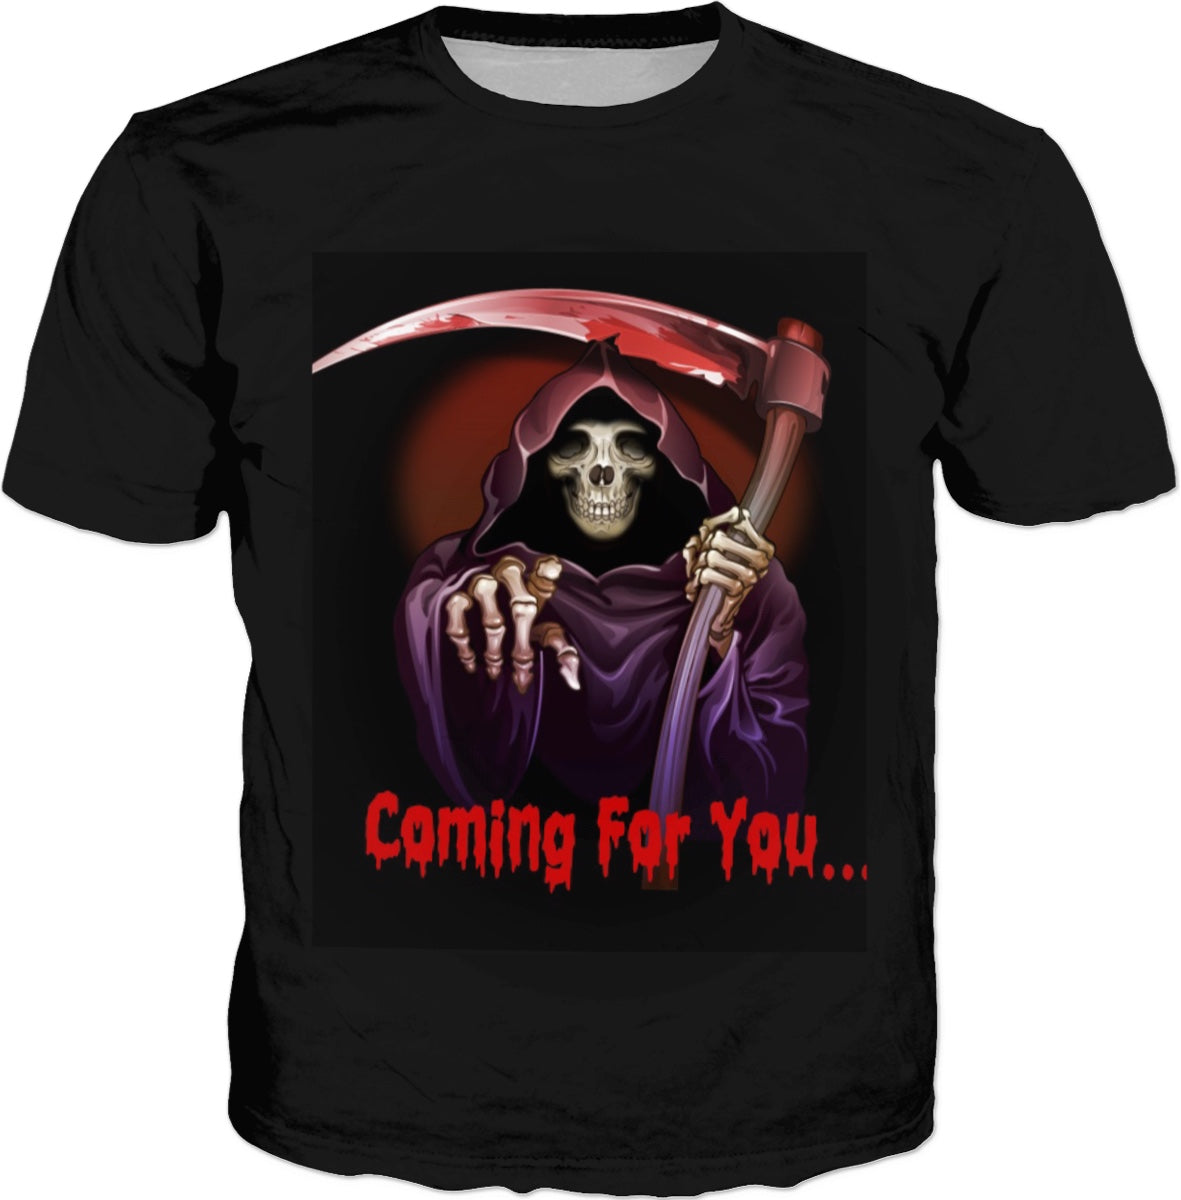 Grim Reaper Coming For You T-shirt